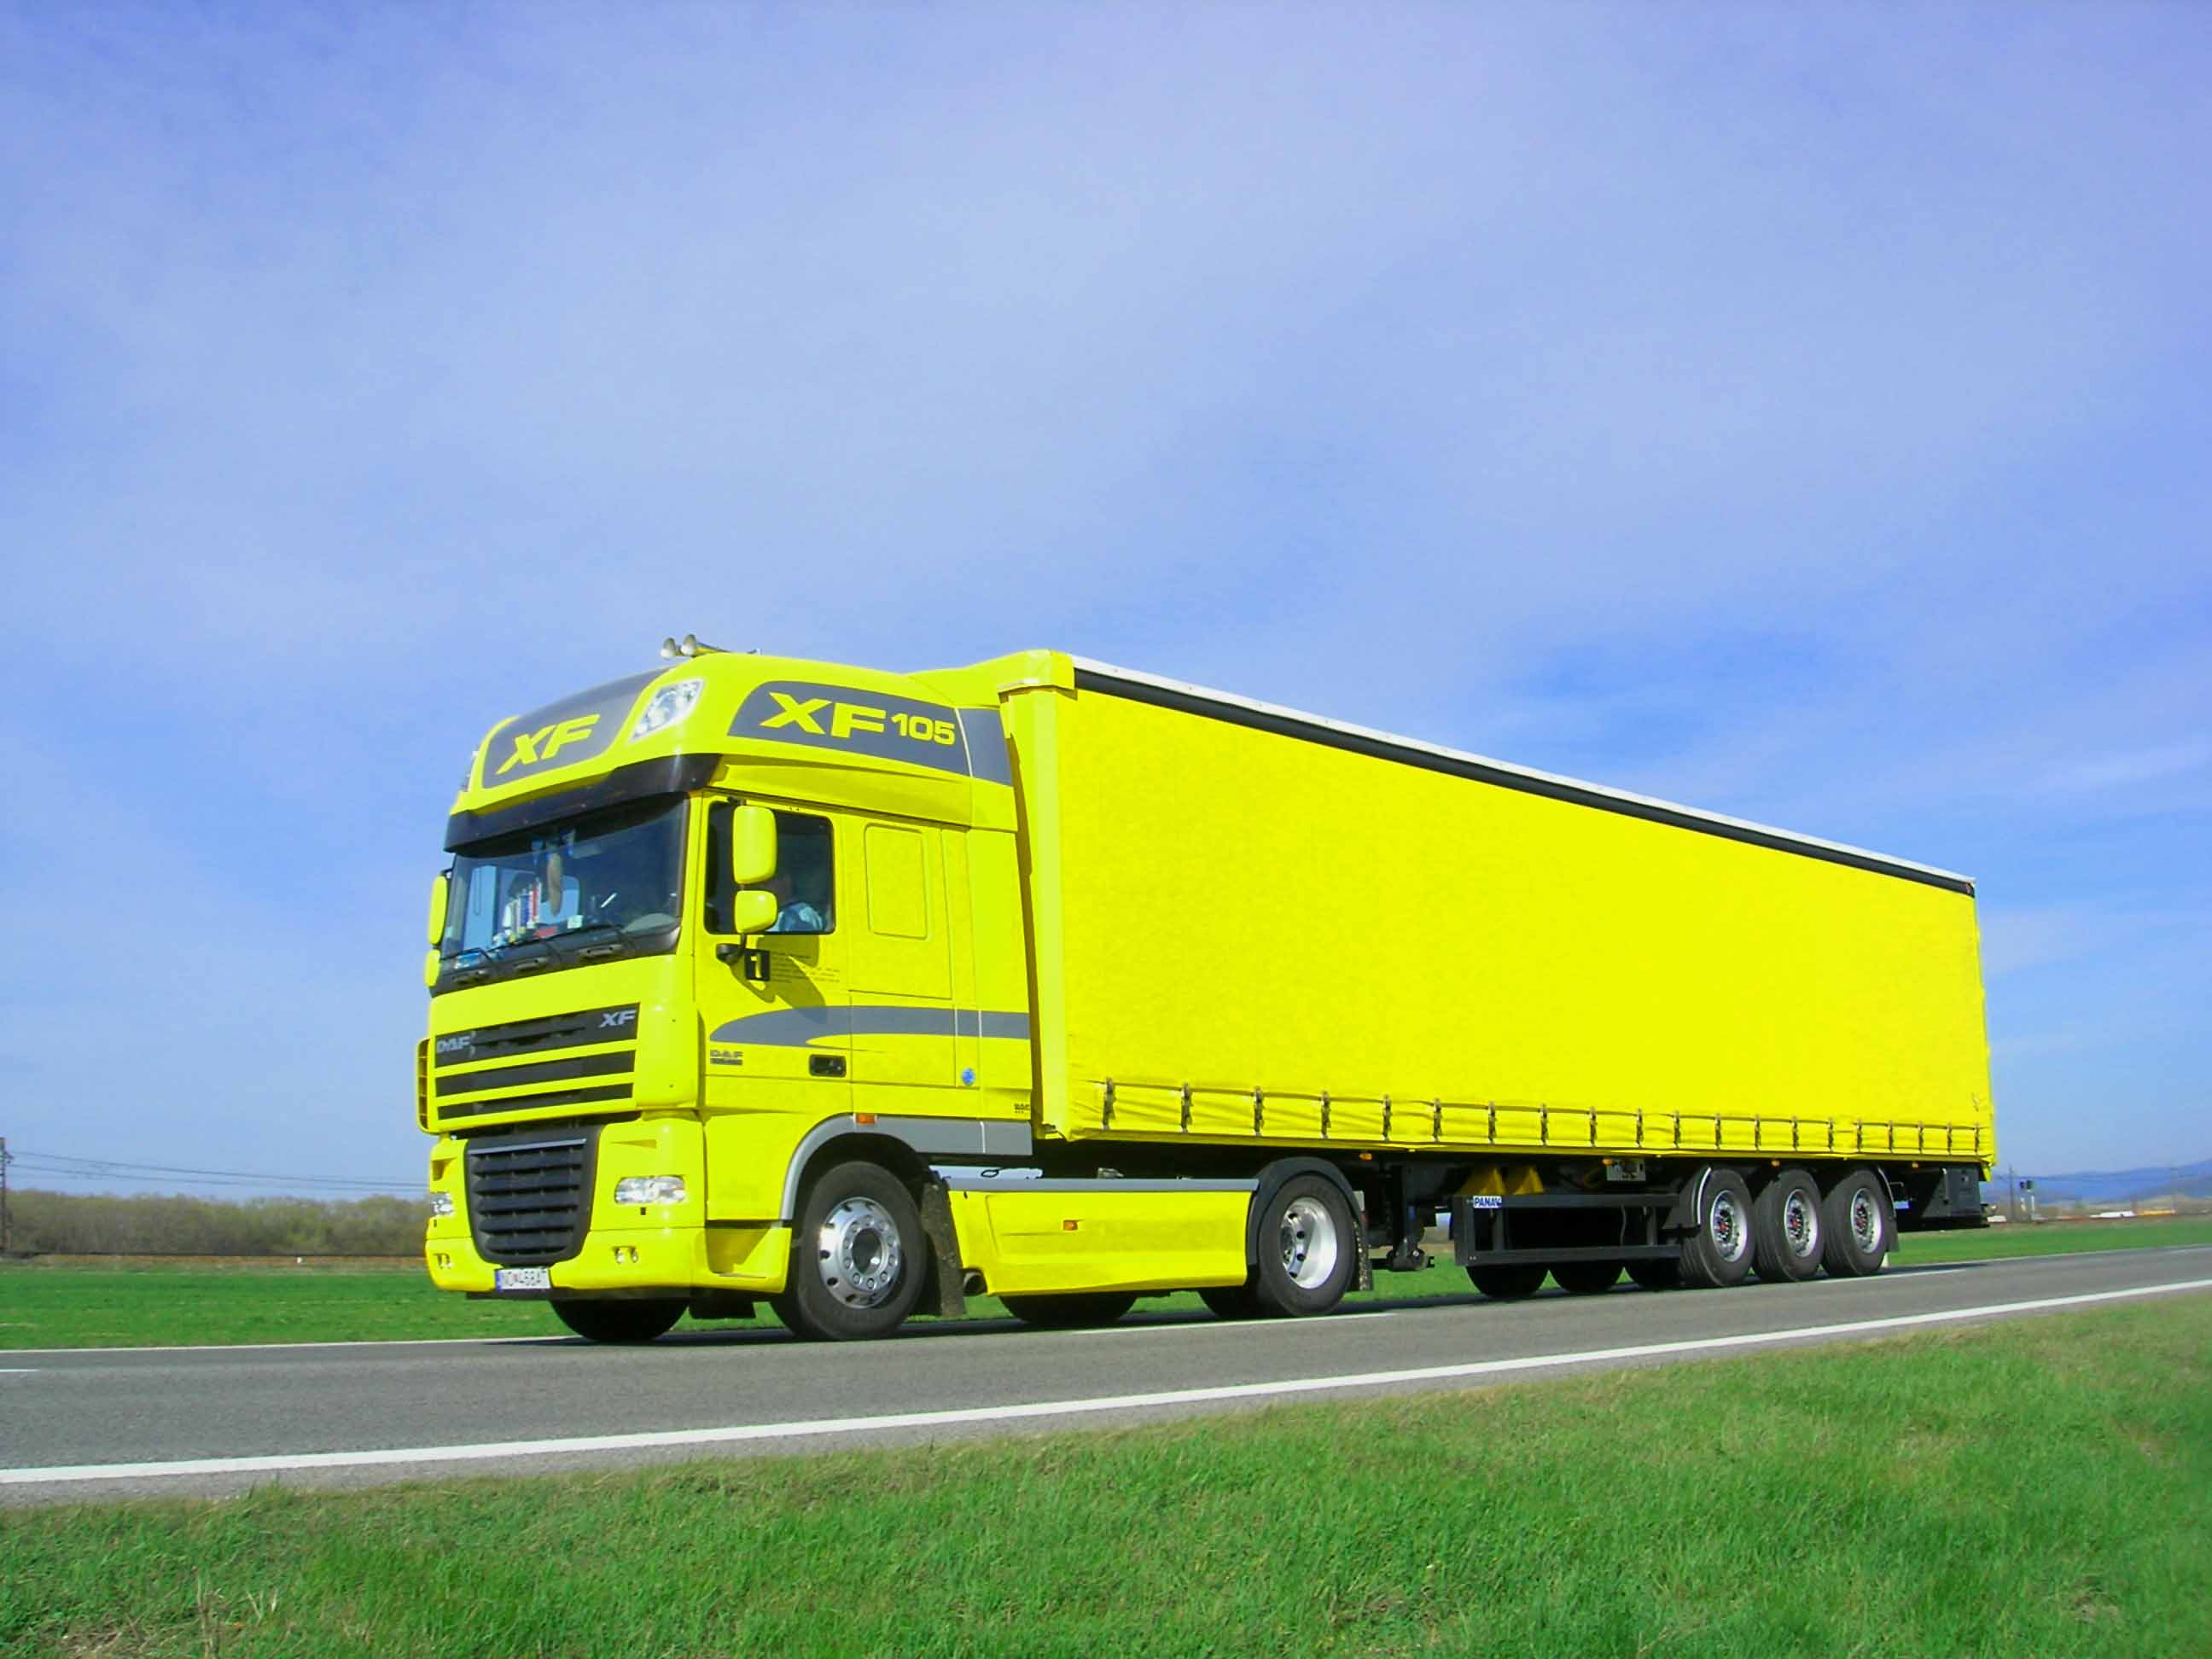 W superbly File:Daf XF105.460 SSC.jpg - Wikimedia Commons UV08